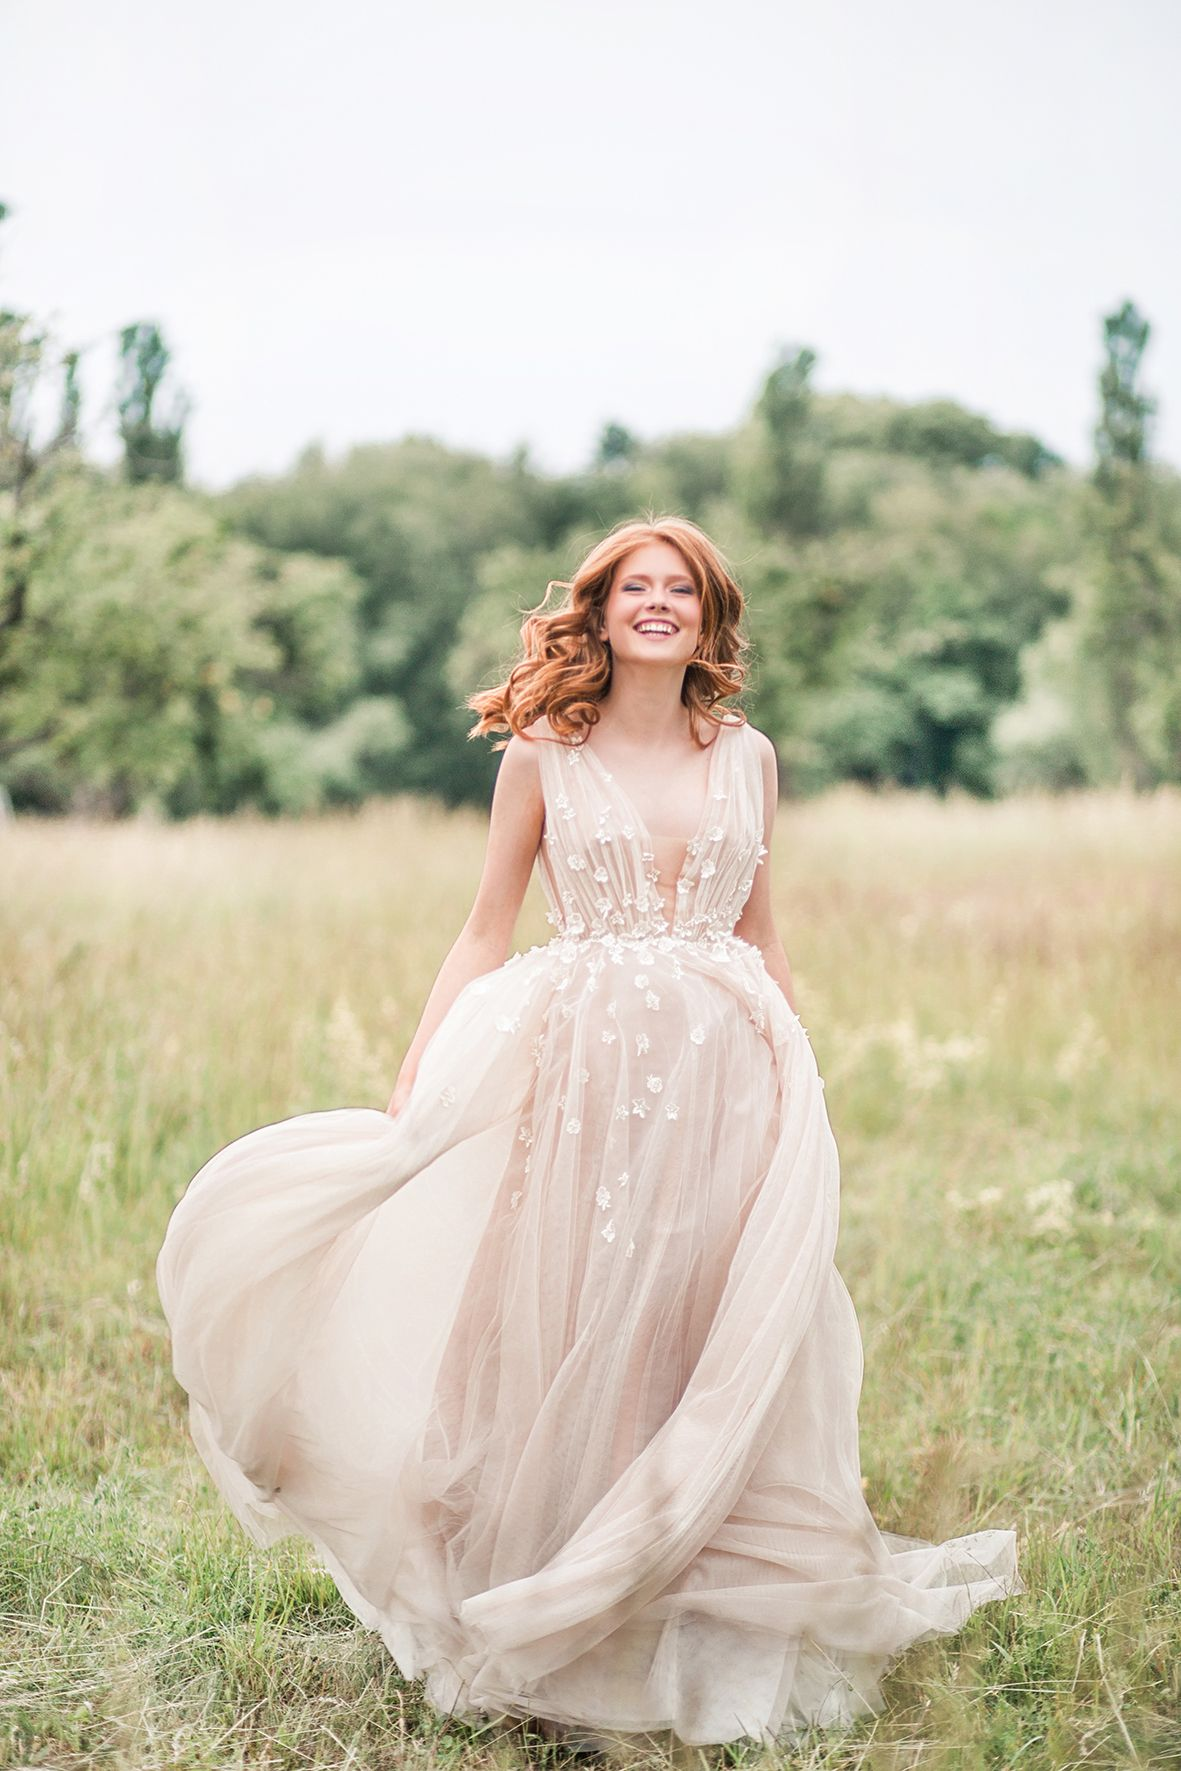 Wedding Dress Wedding Dress Designer Light And Airy Seattle Wedding Photographer Redhead Bride Brid Bridal Portraits Wedding Gowns Lace Redhead Bride